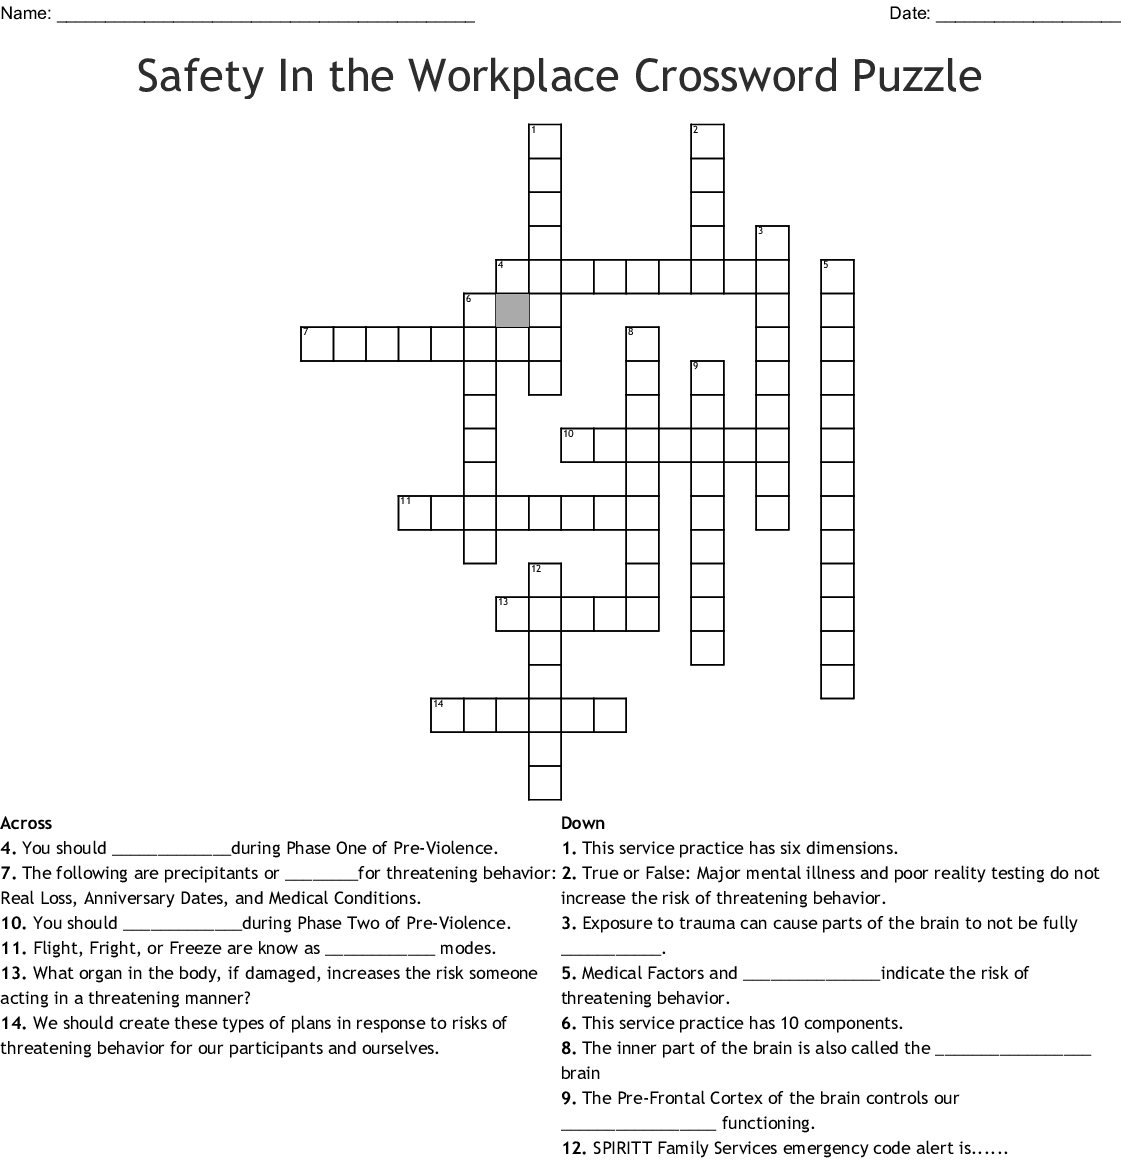 Safety In The Workplace Crossword Puzzle Crossword